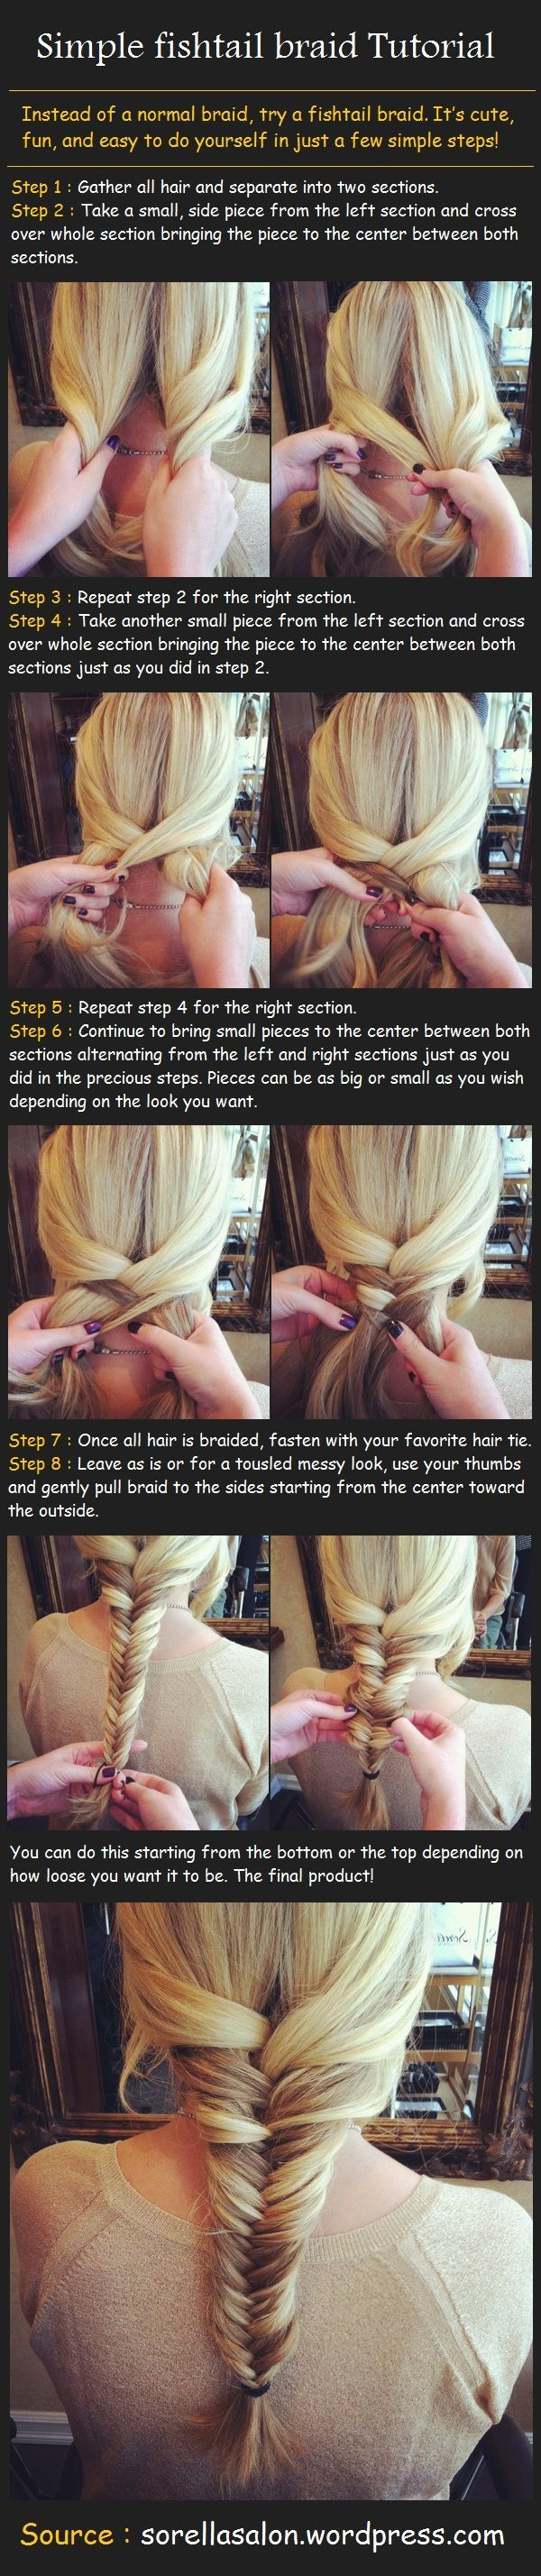 Fish tail braid tutorial.